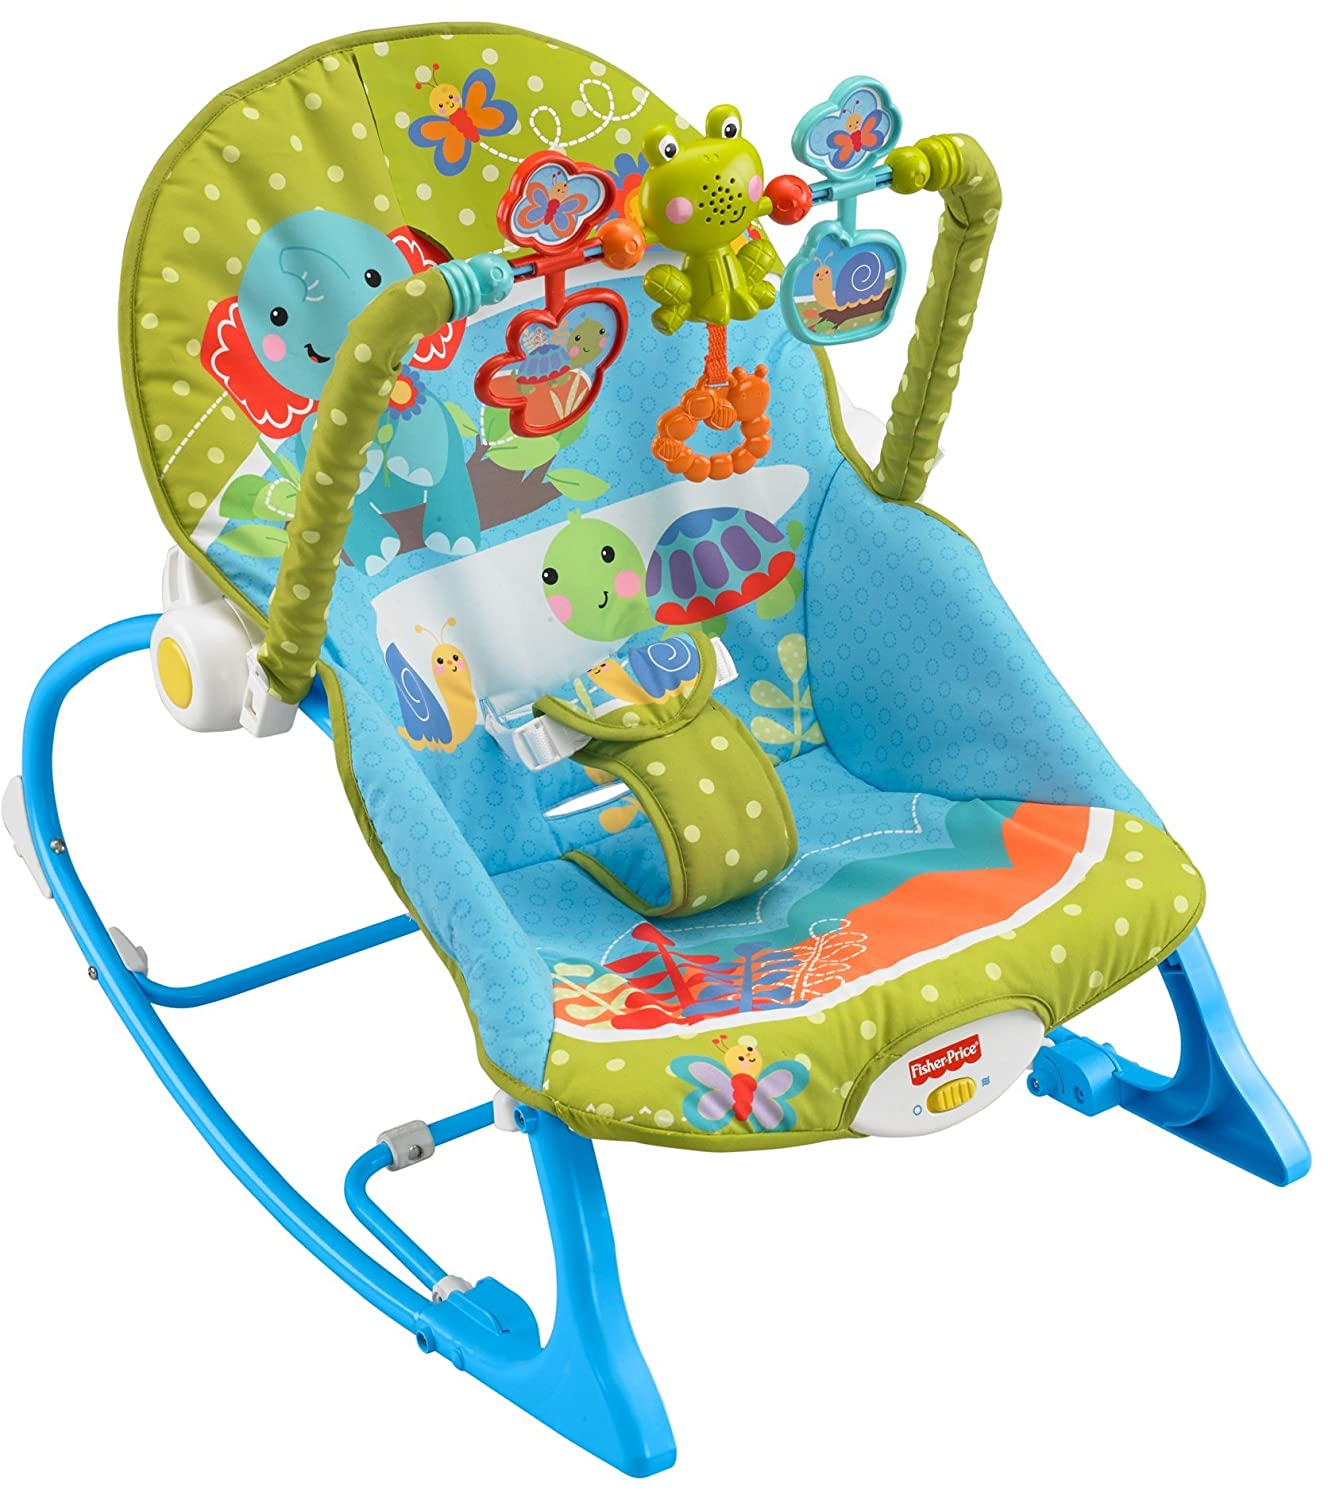 Attirant Amazon.com : Fisher Price Infant To Toddler Rocker, Green With Blue : Baby